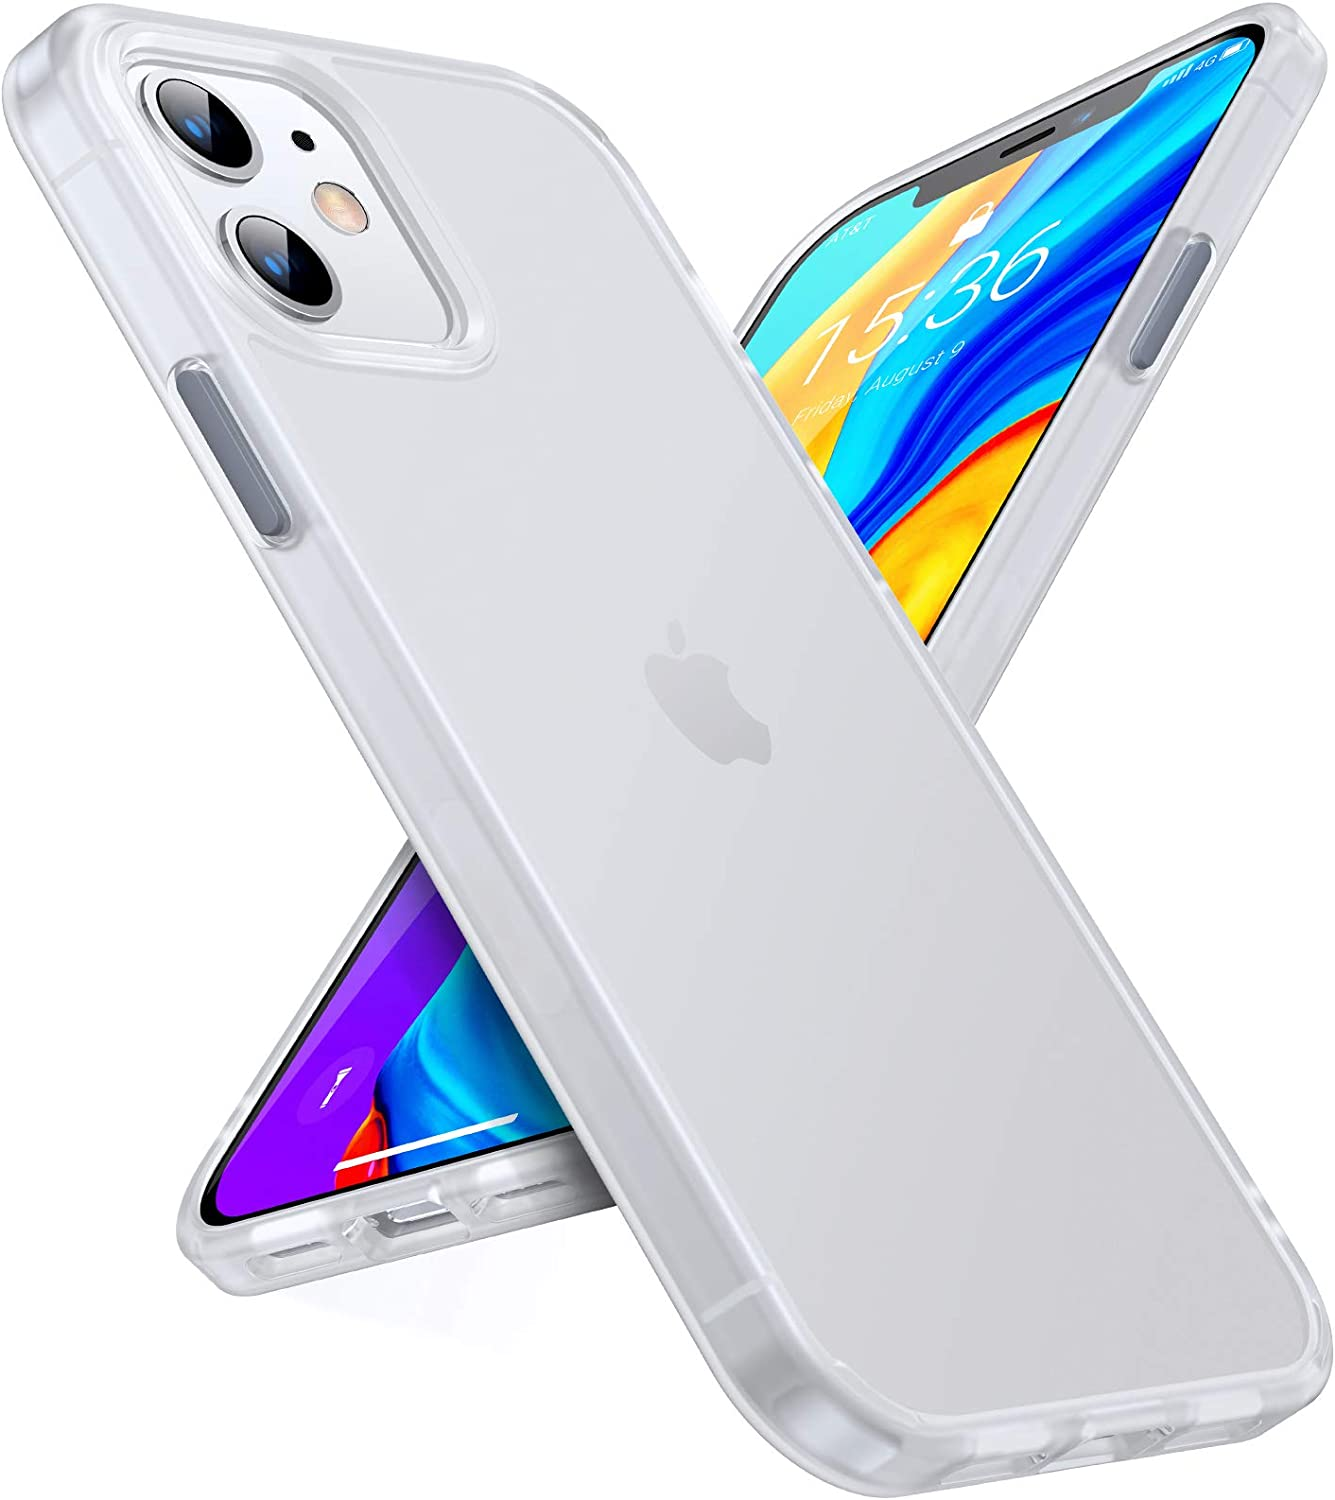 TORRAS Shockproof Compatible for iPhone 12 Case/Compatible for iPhone 12 Pro Case, [Military Grade Drop Tested] Translucent Matte Hard PC Back with Soft Silicone Edge Slim Protective Guardian, White